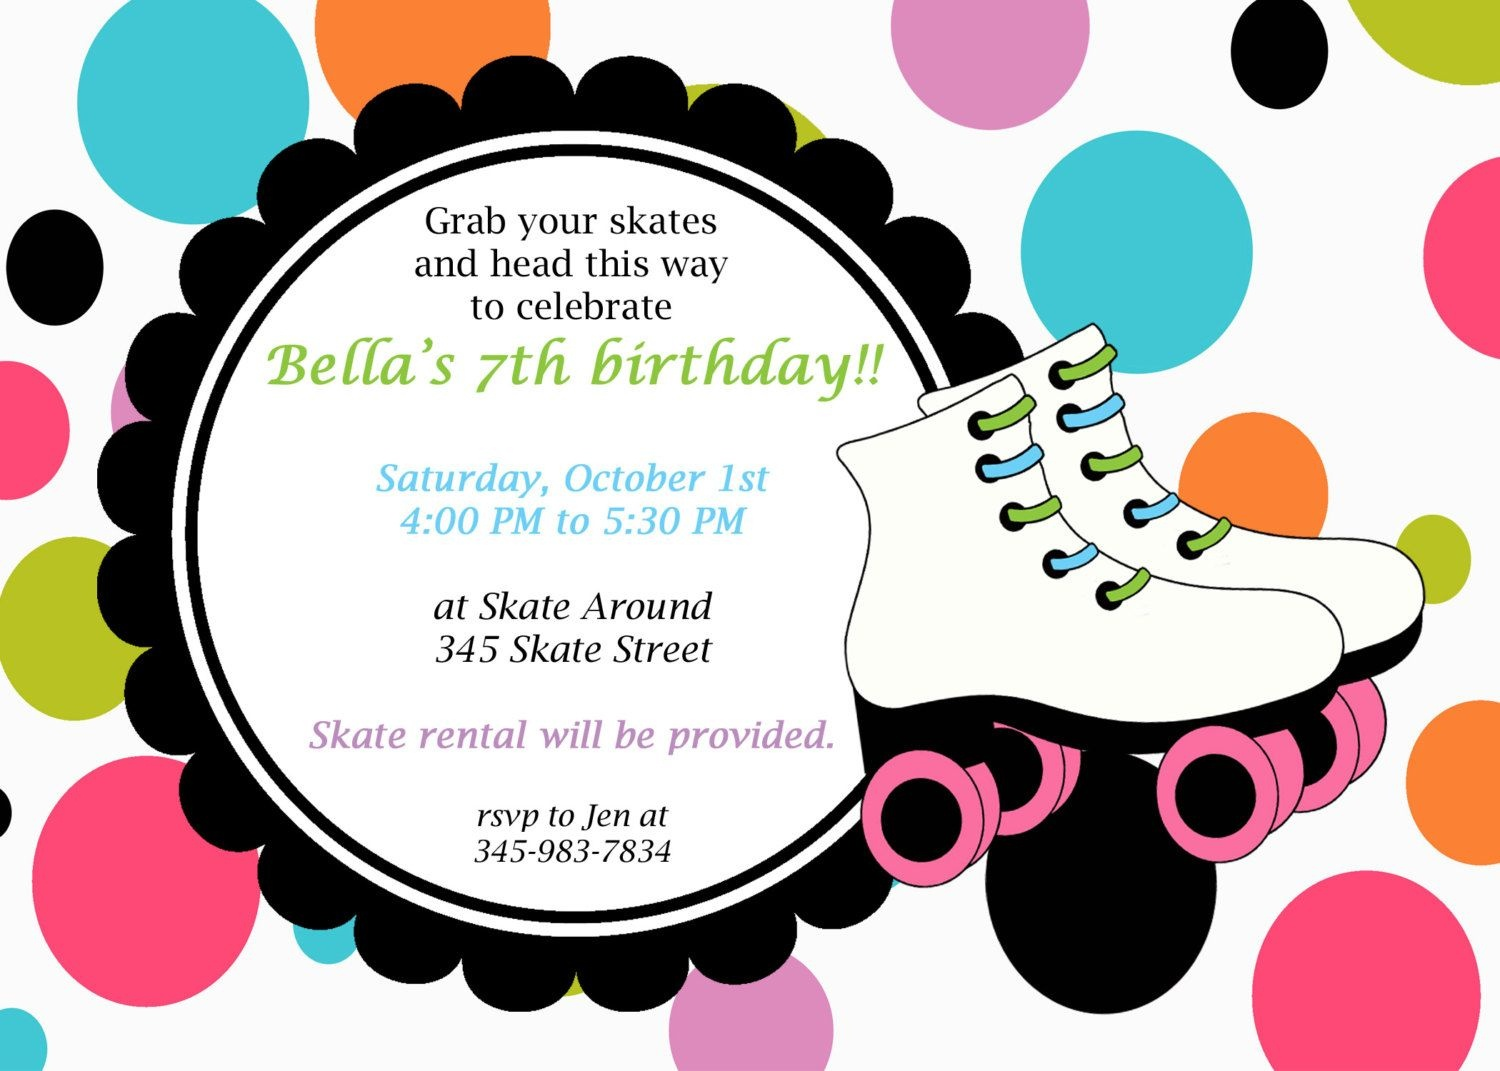 Printable Roller Skating Invitations | Birthday Ideas In 2019 - Free Printable Skating Invitations